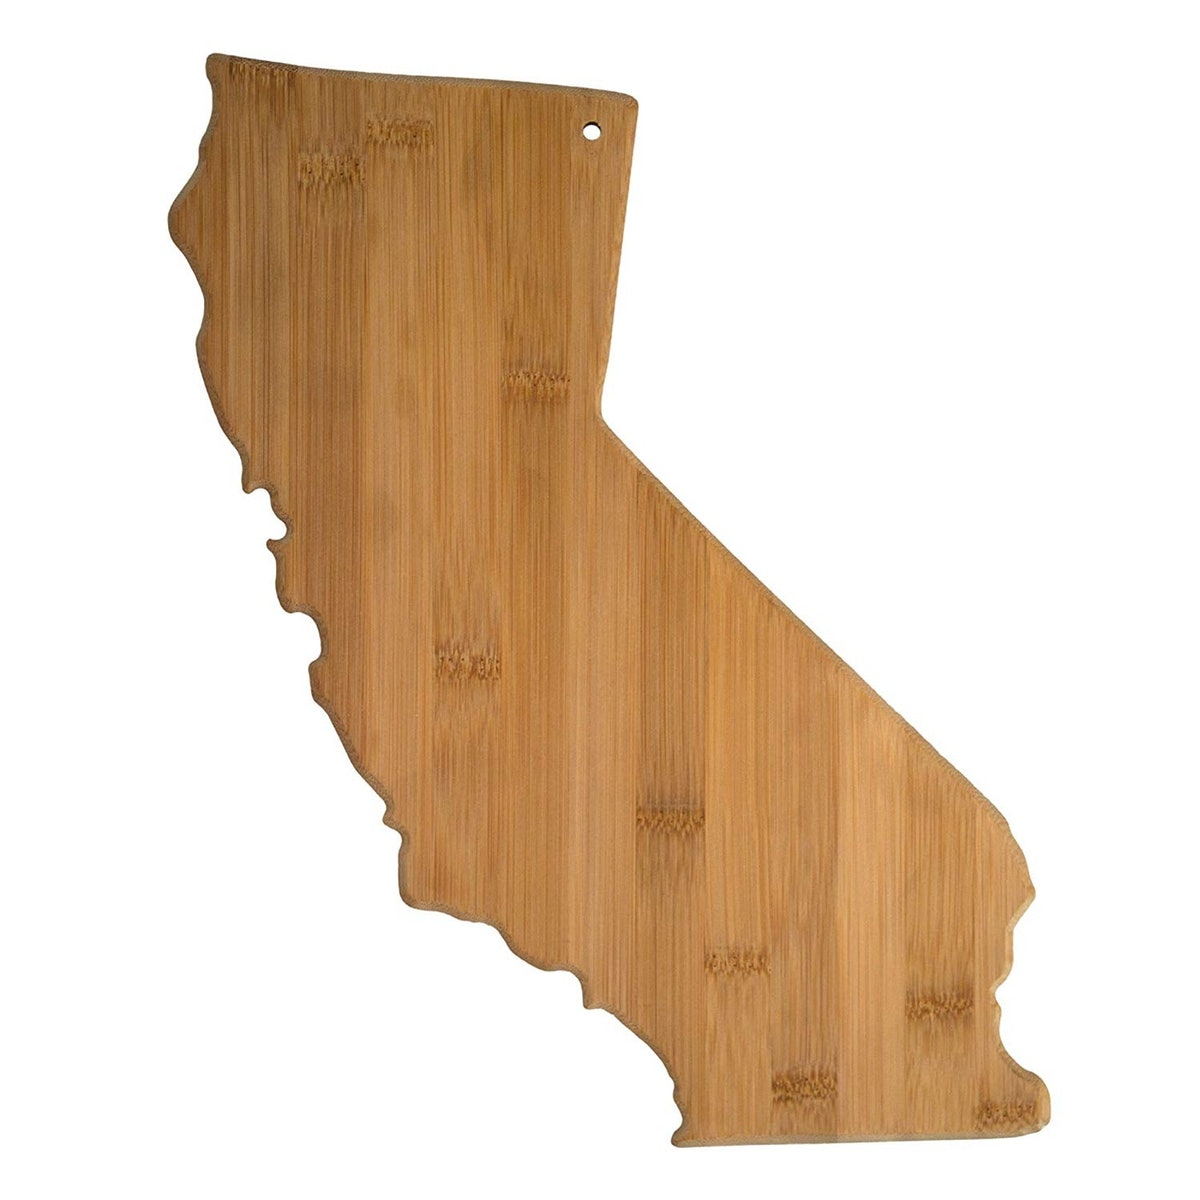 Totally Bamboo State Shaped Cutting Board